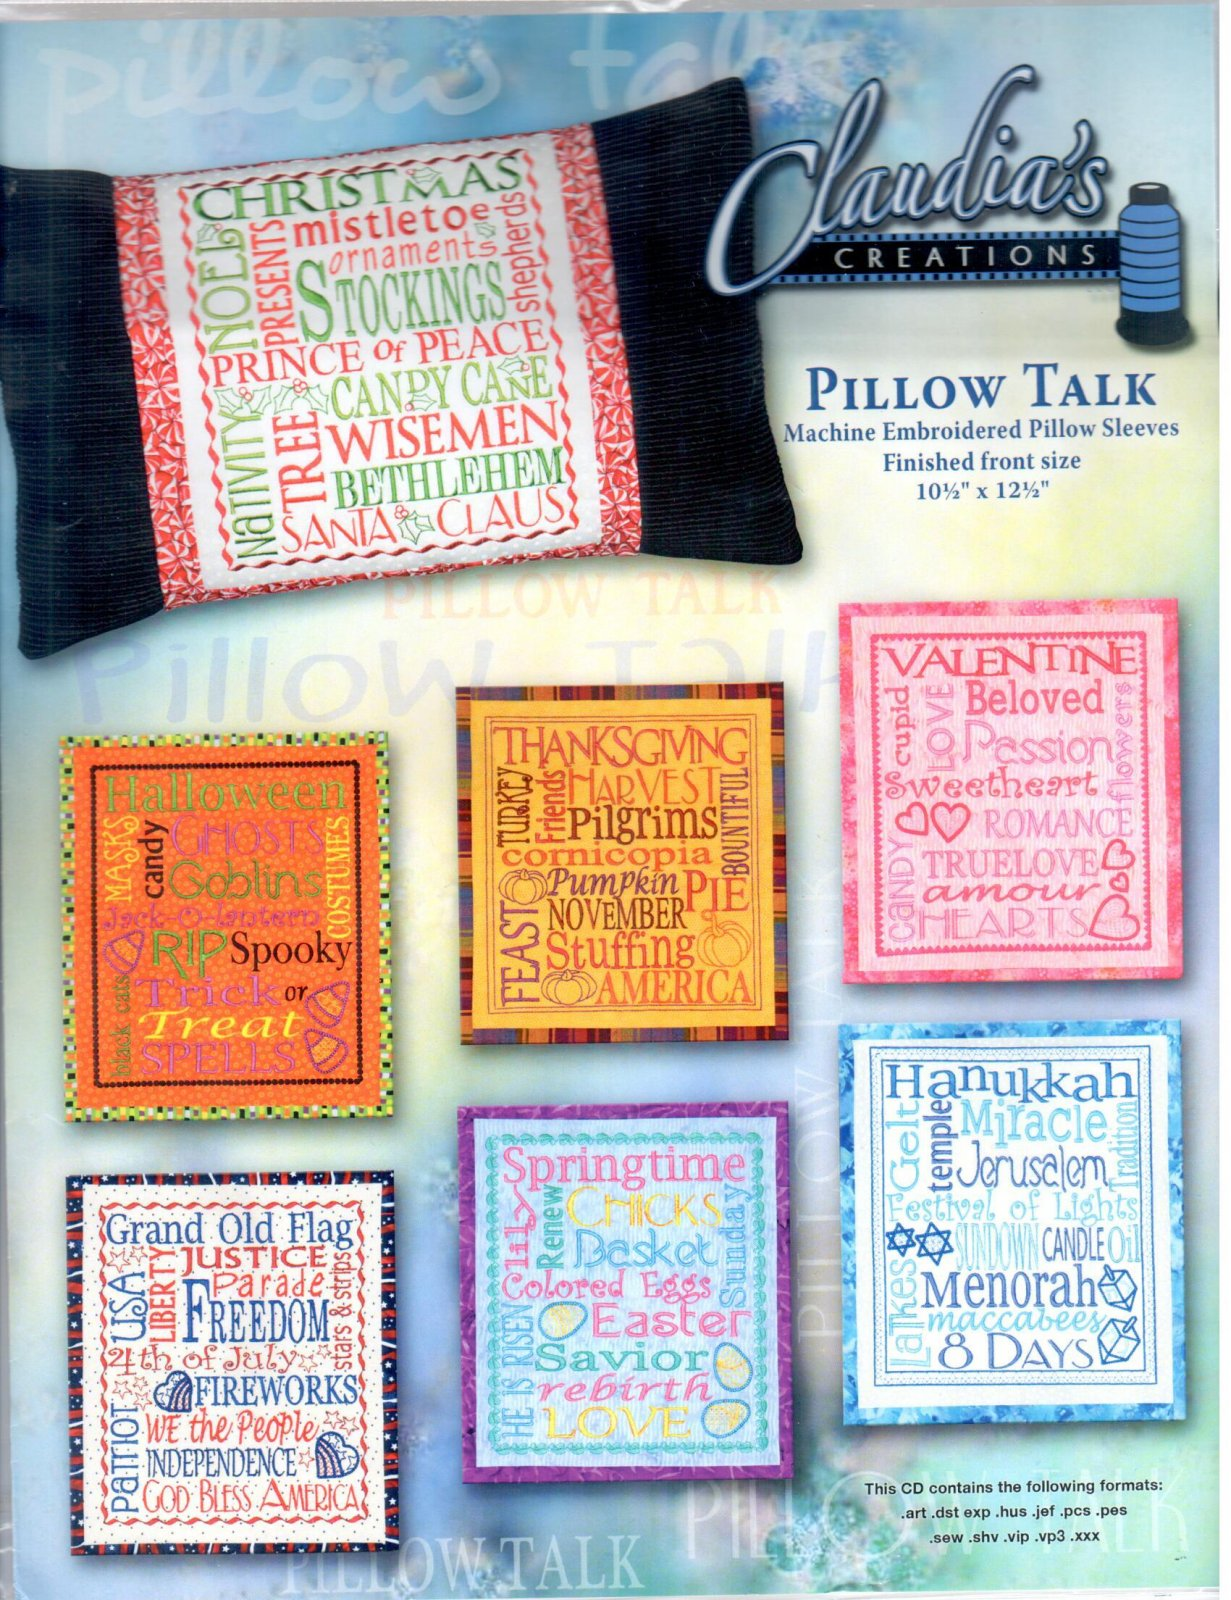 Pillow Talk Embroidery Designs by Claudia's Creations